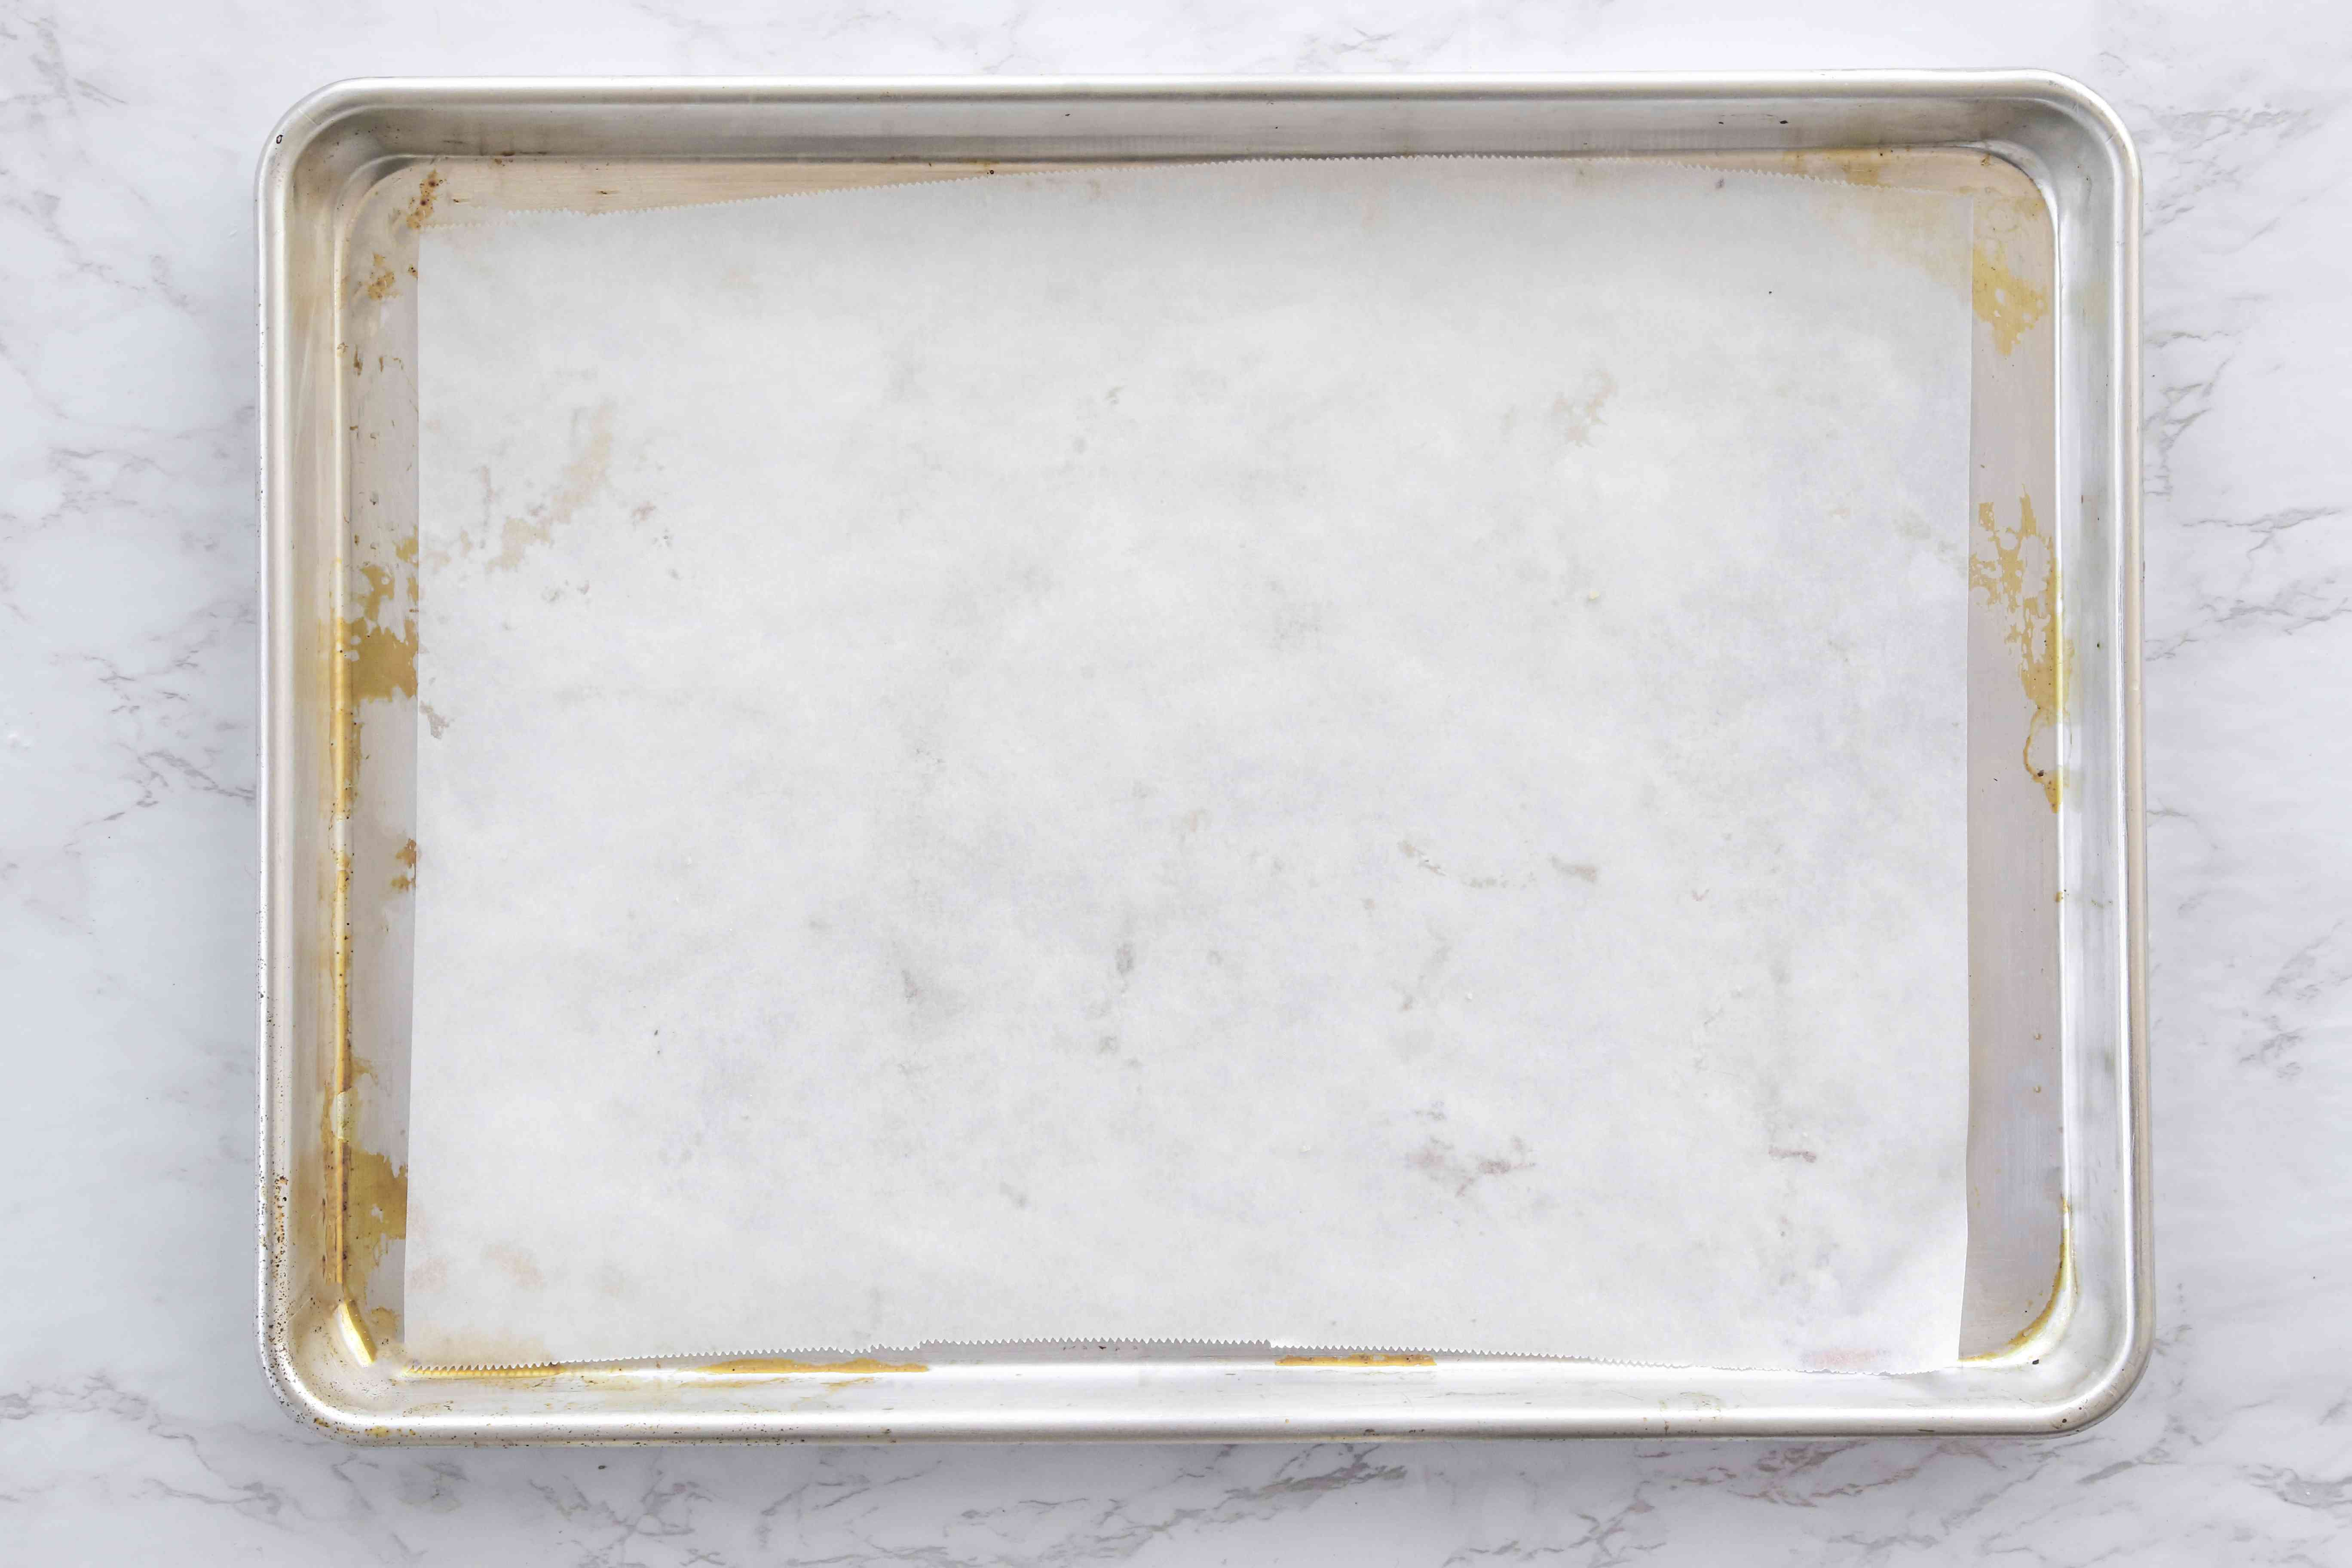 baking sheet with parchment paper